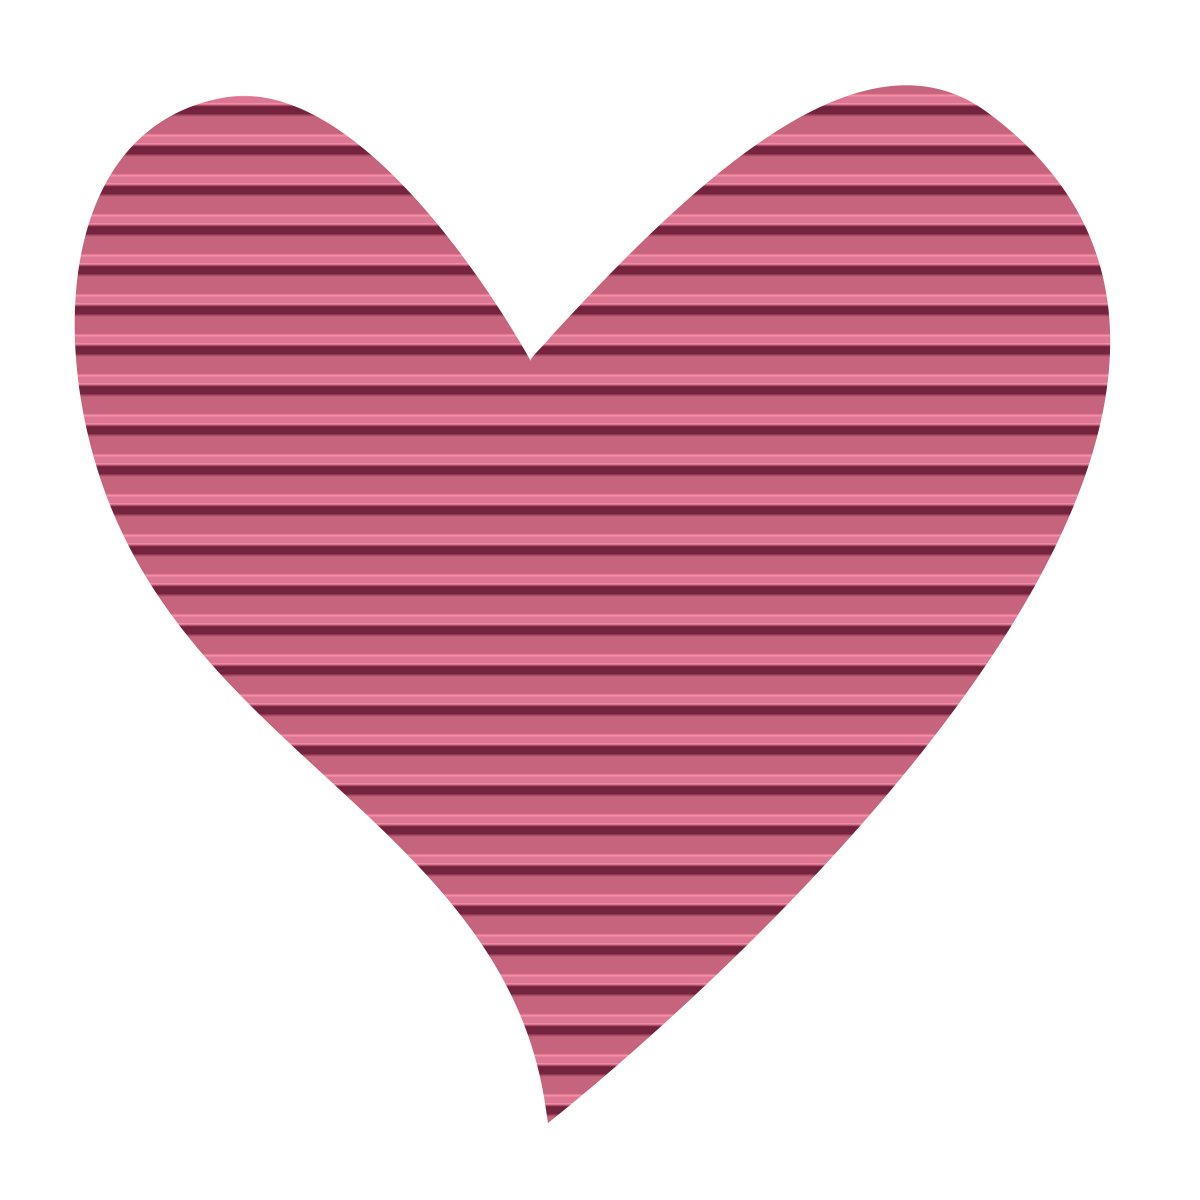 Clipart pink heart image royalty free stock Heart Clipart | Clipart Panda - Free Clipart Images image royalty free stock